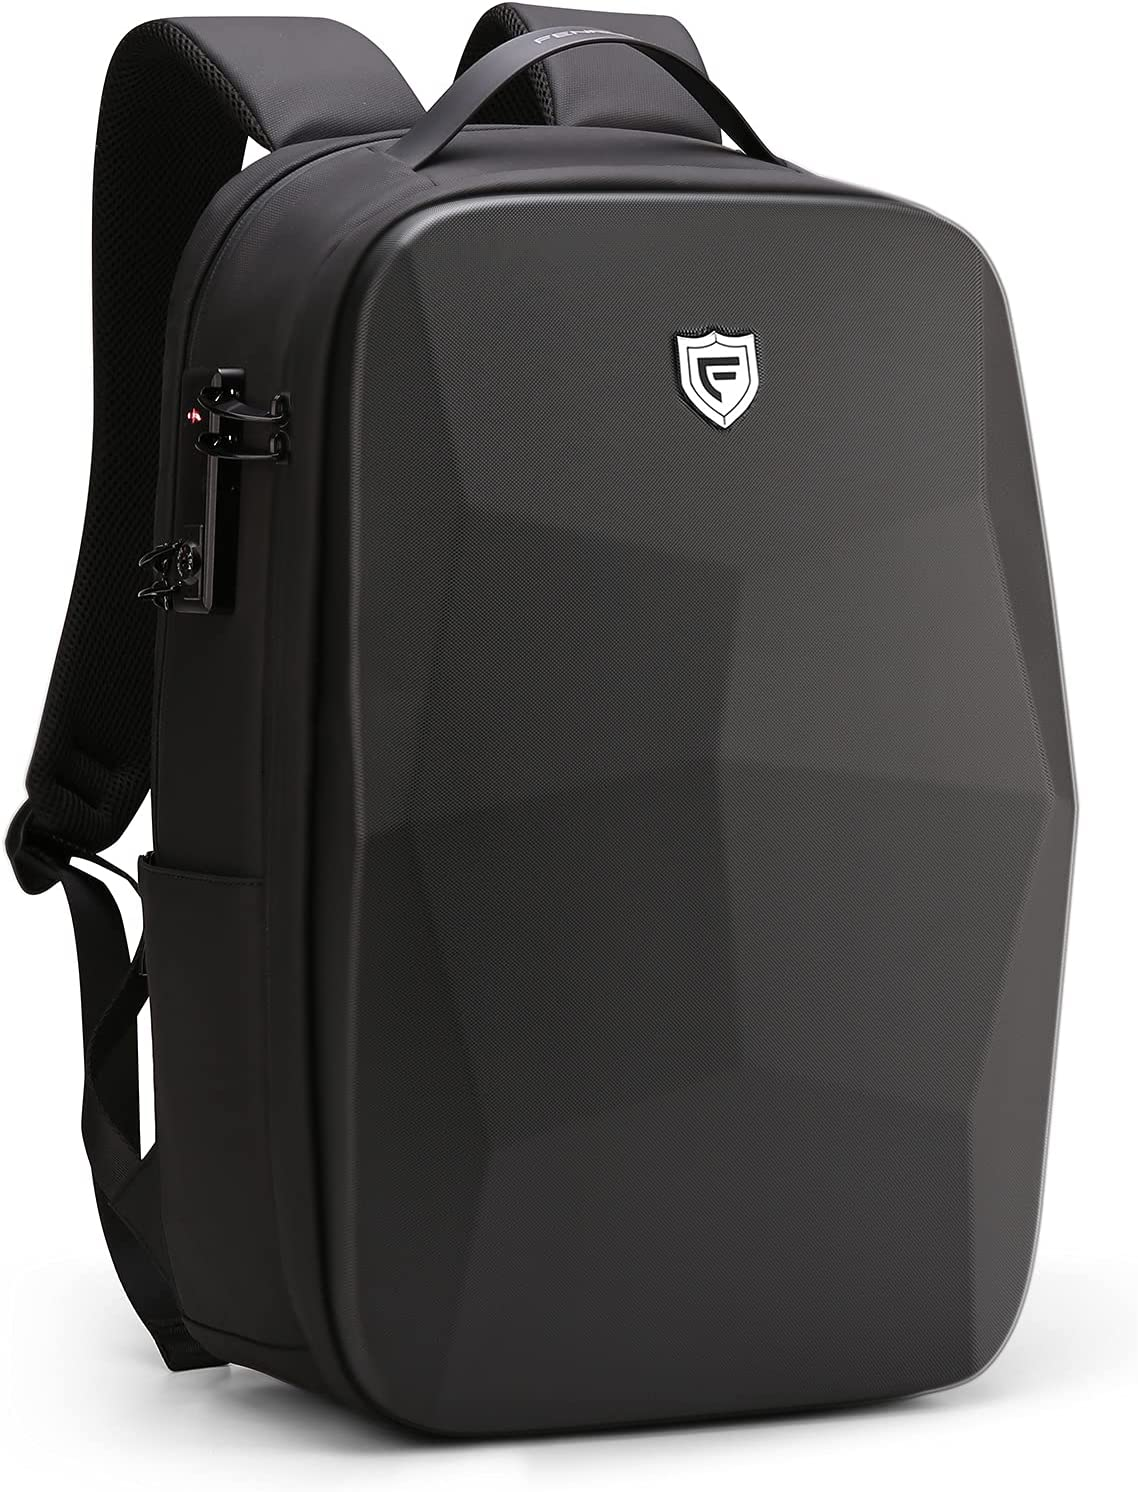 FENRUIEN 25L 17.3-Inch Laptop Backpack,Anti-Theft Business Rucksack with PC Compartment,Waterproof Daypack with USB Port for Travel/College/Work,Black